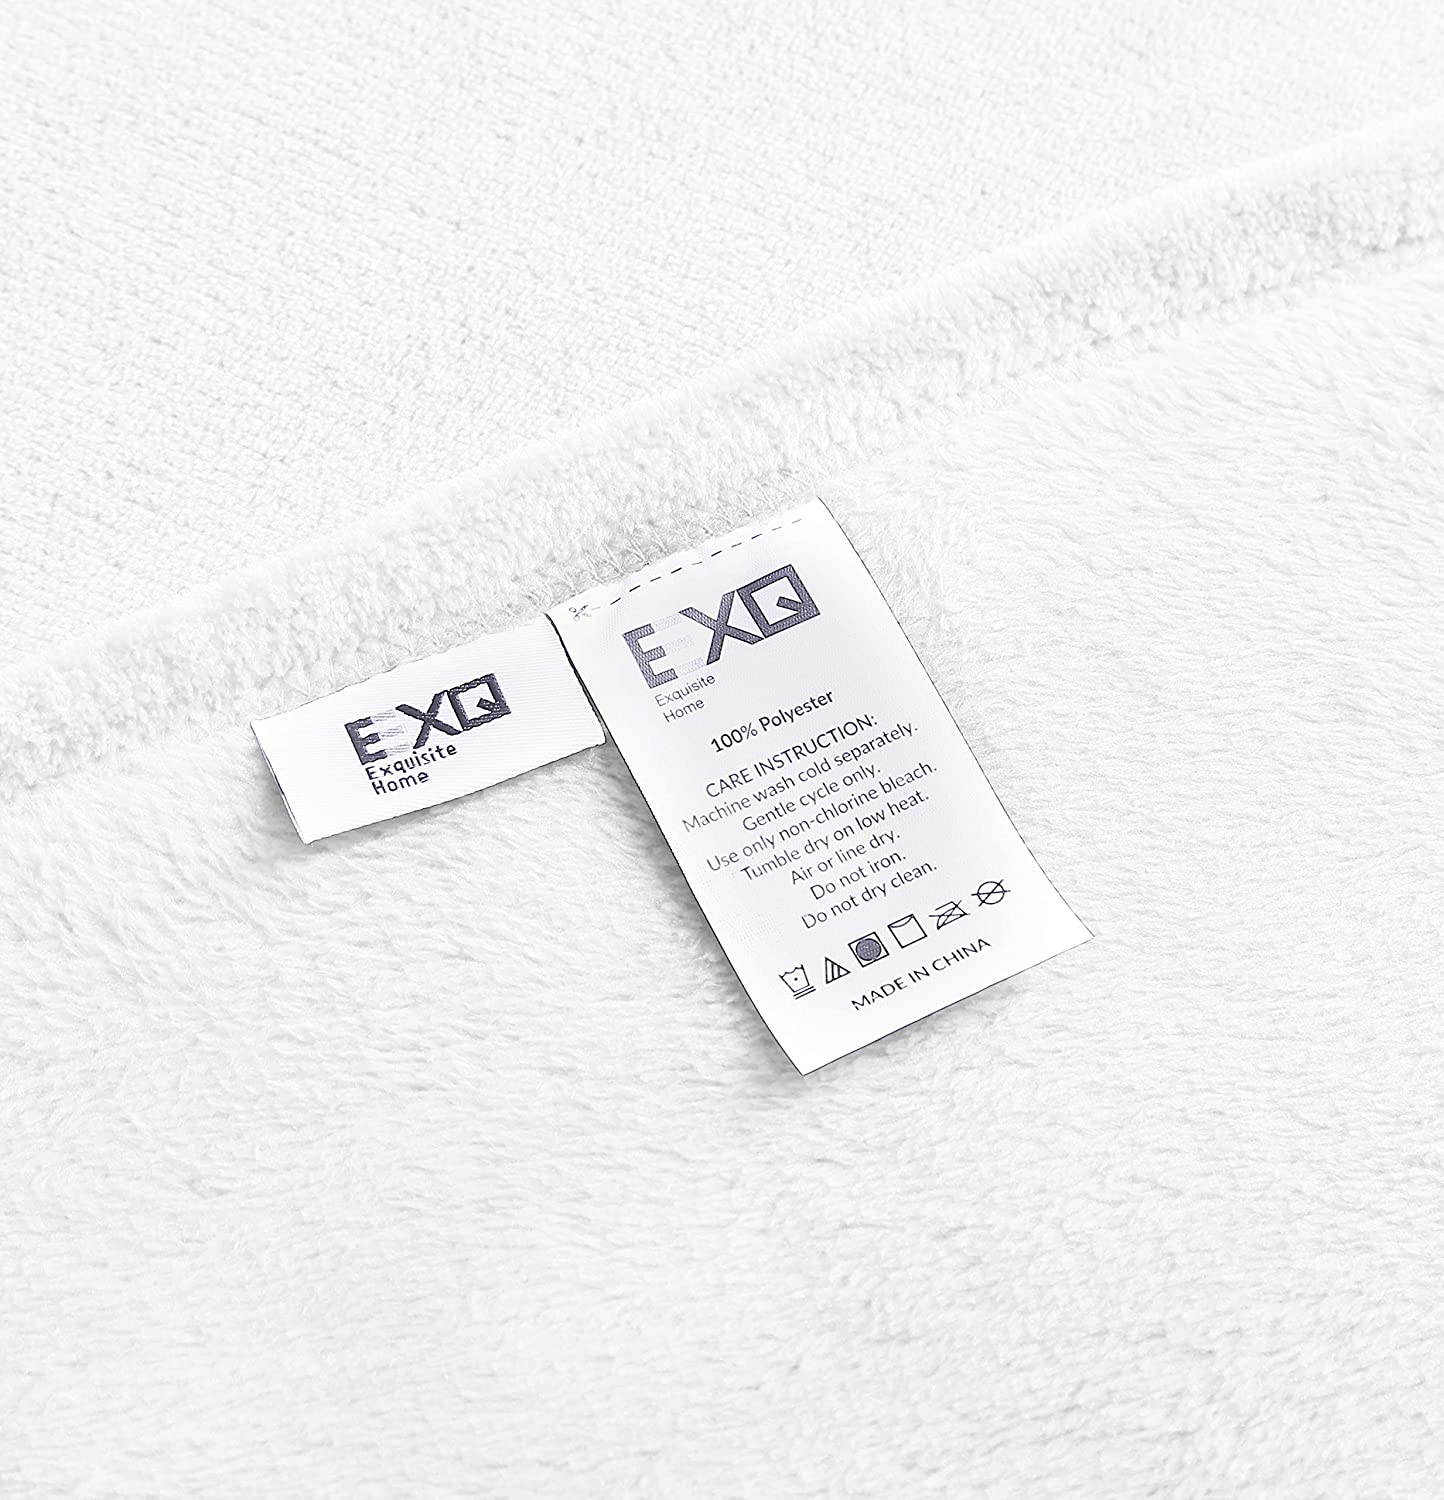 EXQ Home Fleece Blanket King Size White Throw Blanket for Bed or Couch Super Soft Microfiber Fuzzy Flannel Blanket for Adults or Pet Lightweight,Non Shedding